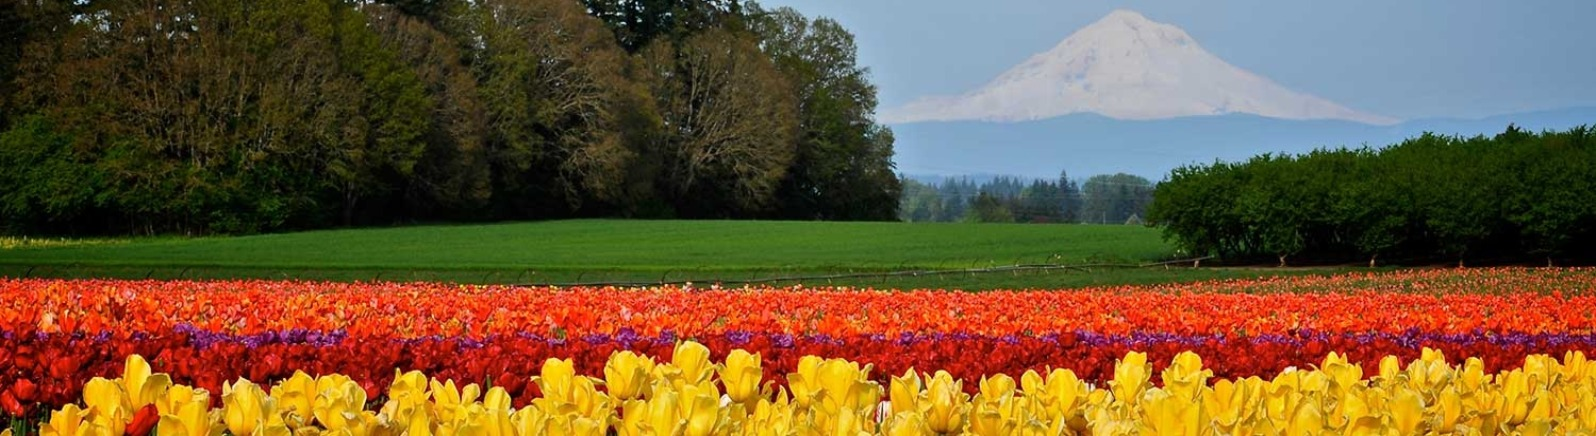 Thousands of yellow, red, purple and orange tulips flood the field with color at the Wooden Shoe Tulip Festival in Woodburn.